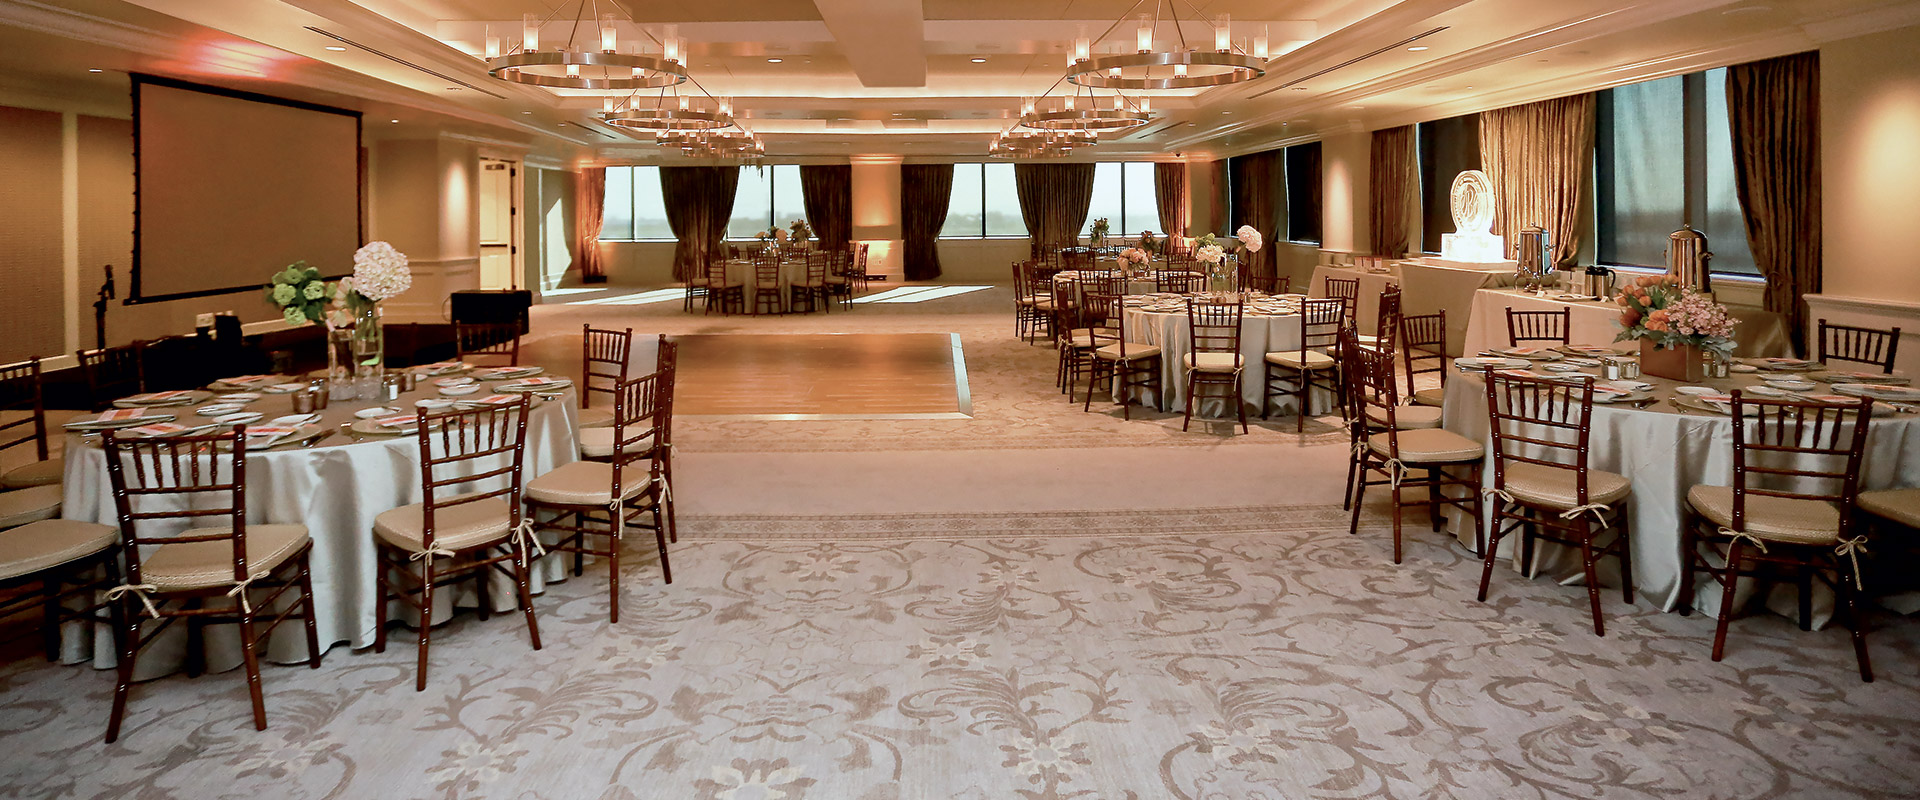 Elegant 6th floor room in cream, white, and burgundy, with dining tables, a dance floor, chandeliers, and oversized windows.